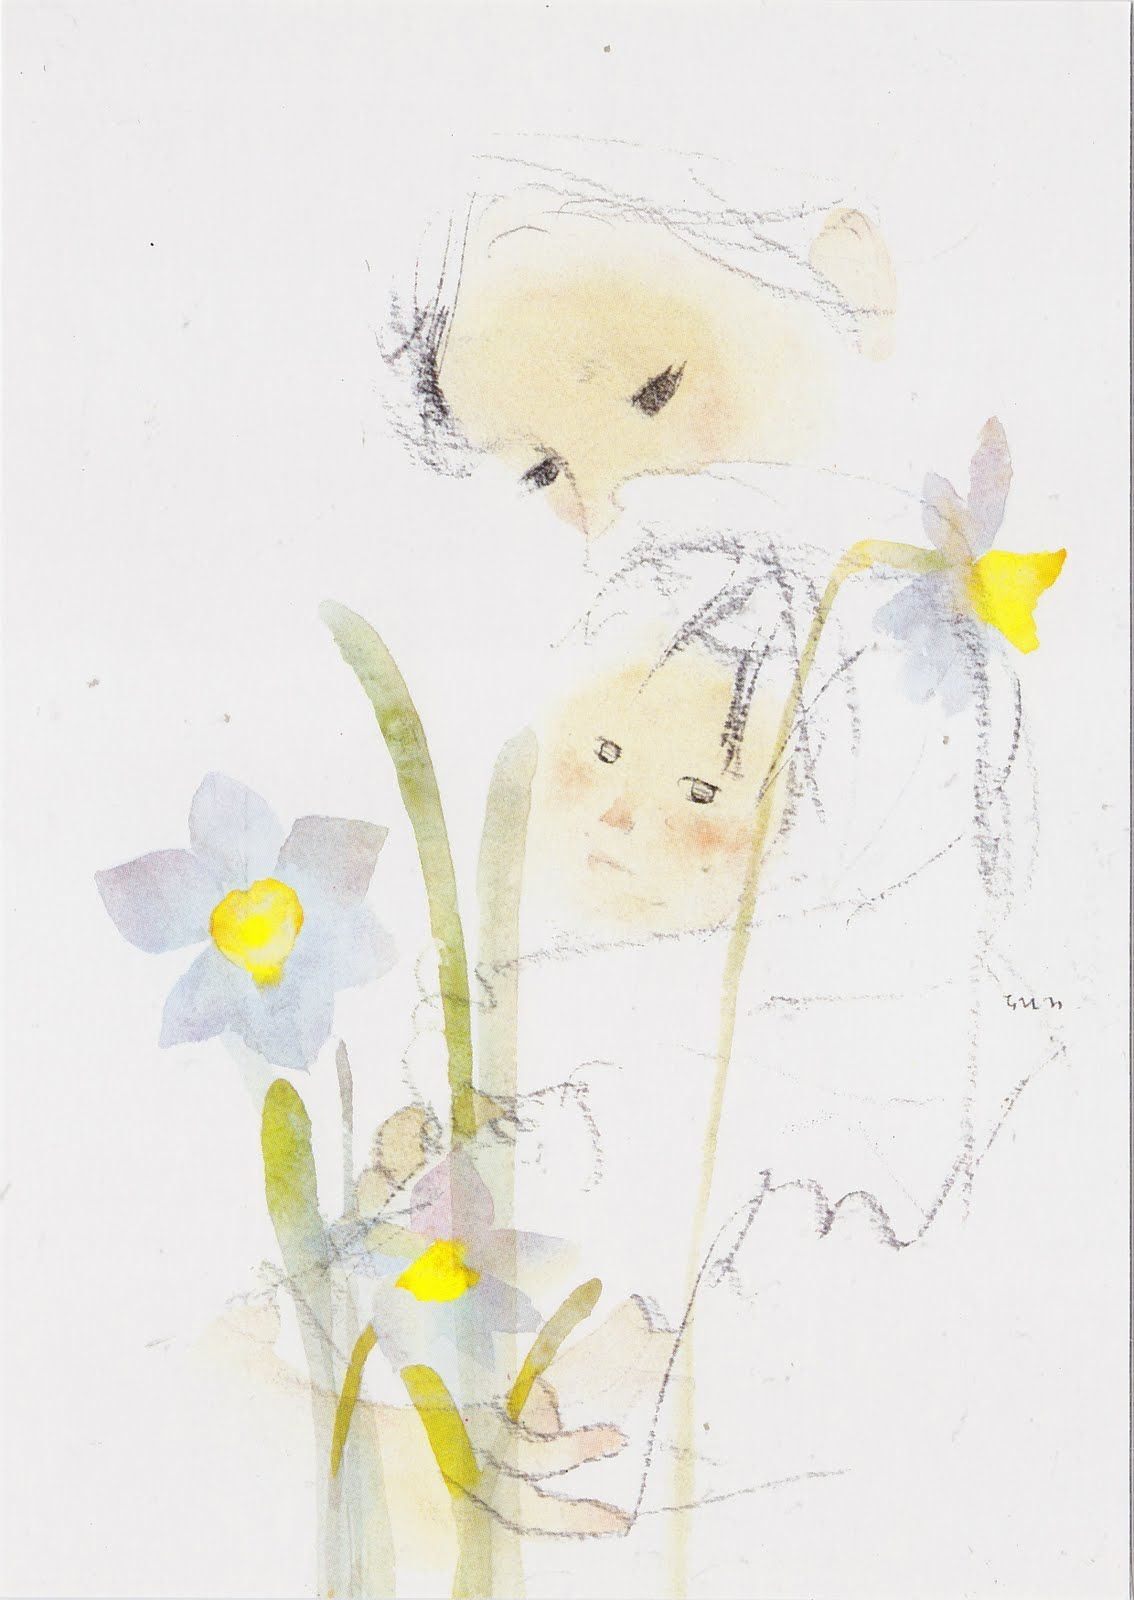 Chihiro Iwasaki Mother Like A Spring いわさきちひろ イラスト